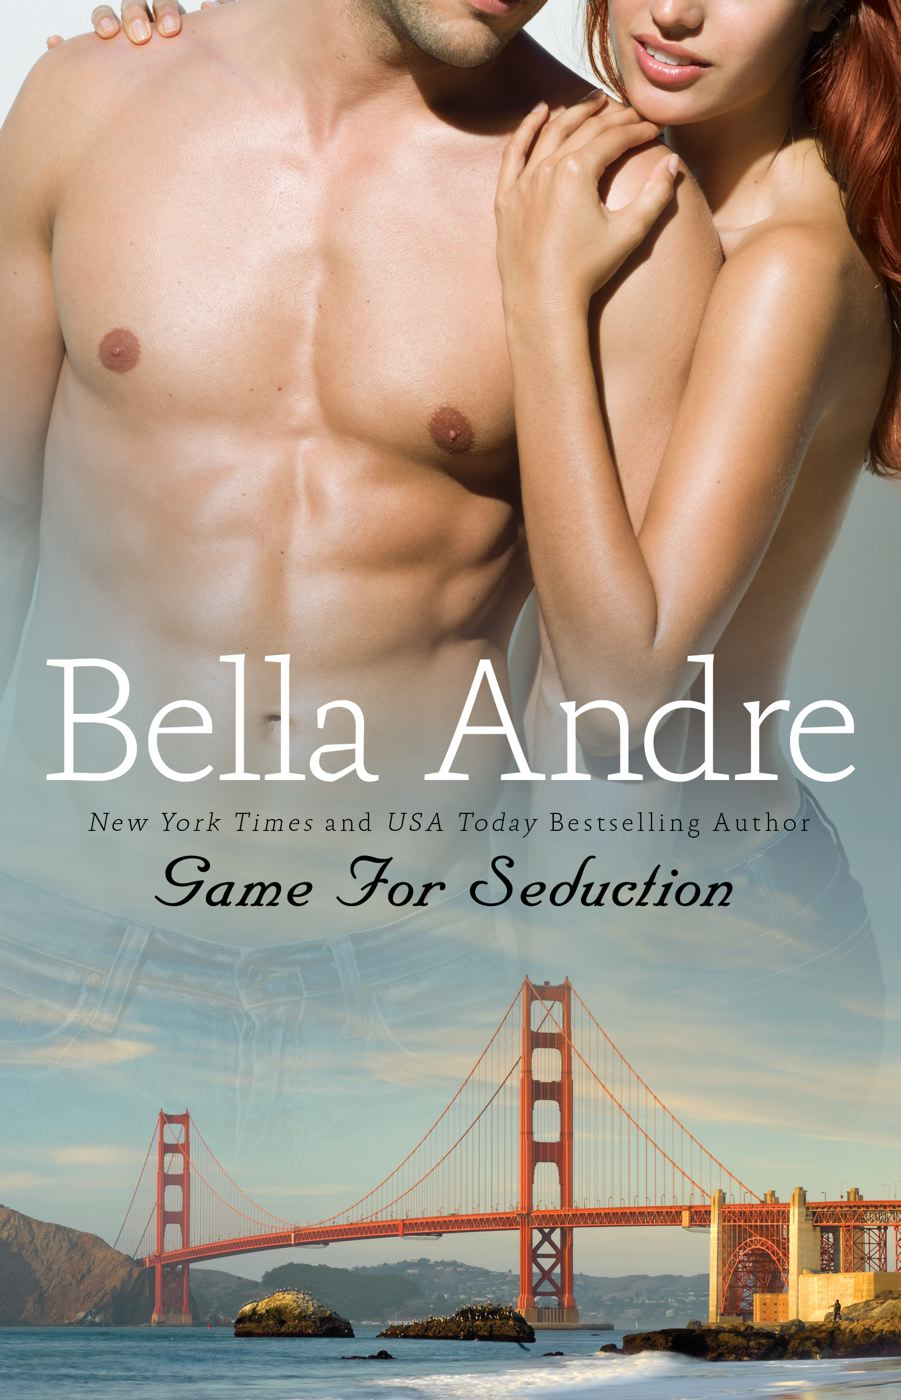 Game for Seduction By: Bella Andre